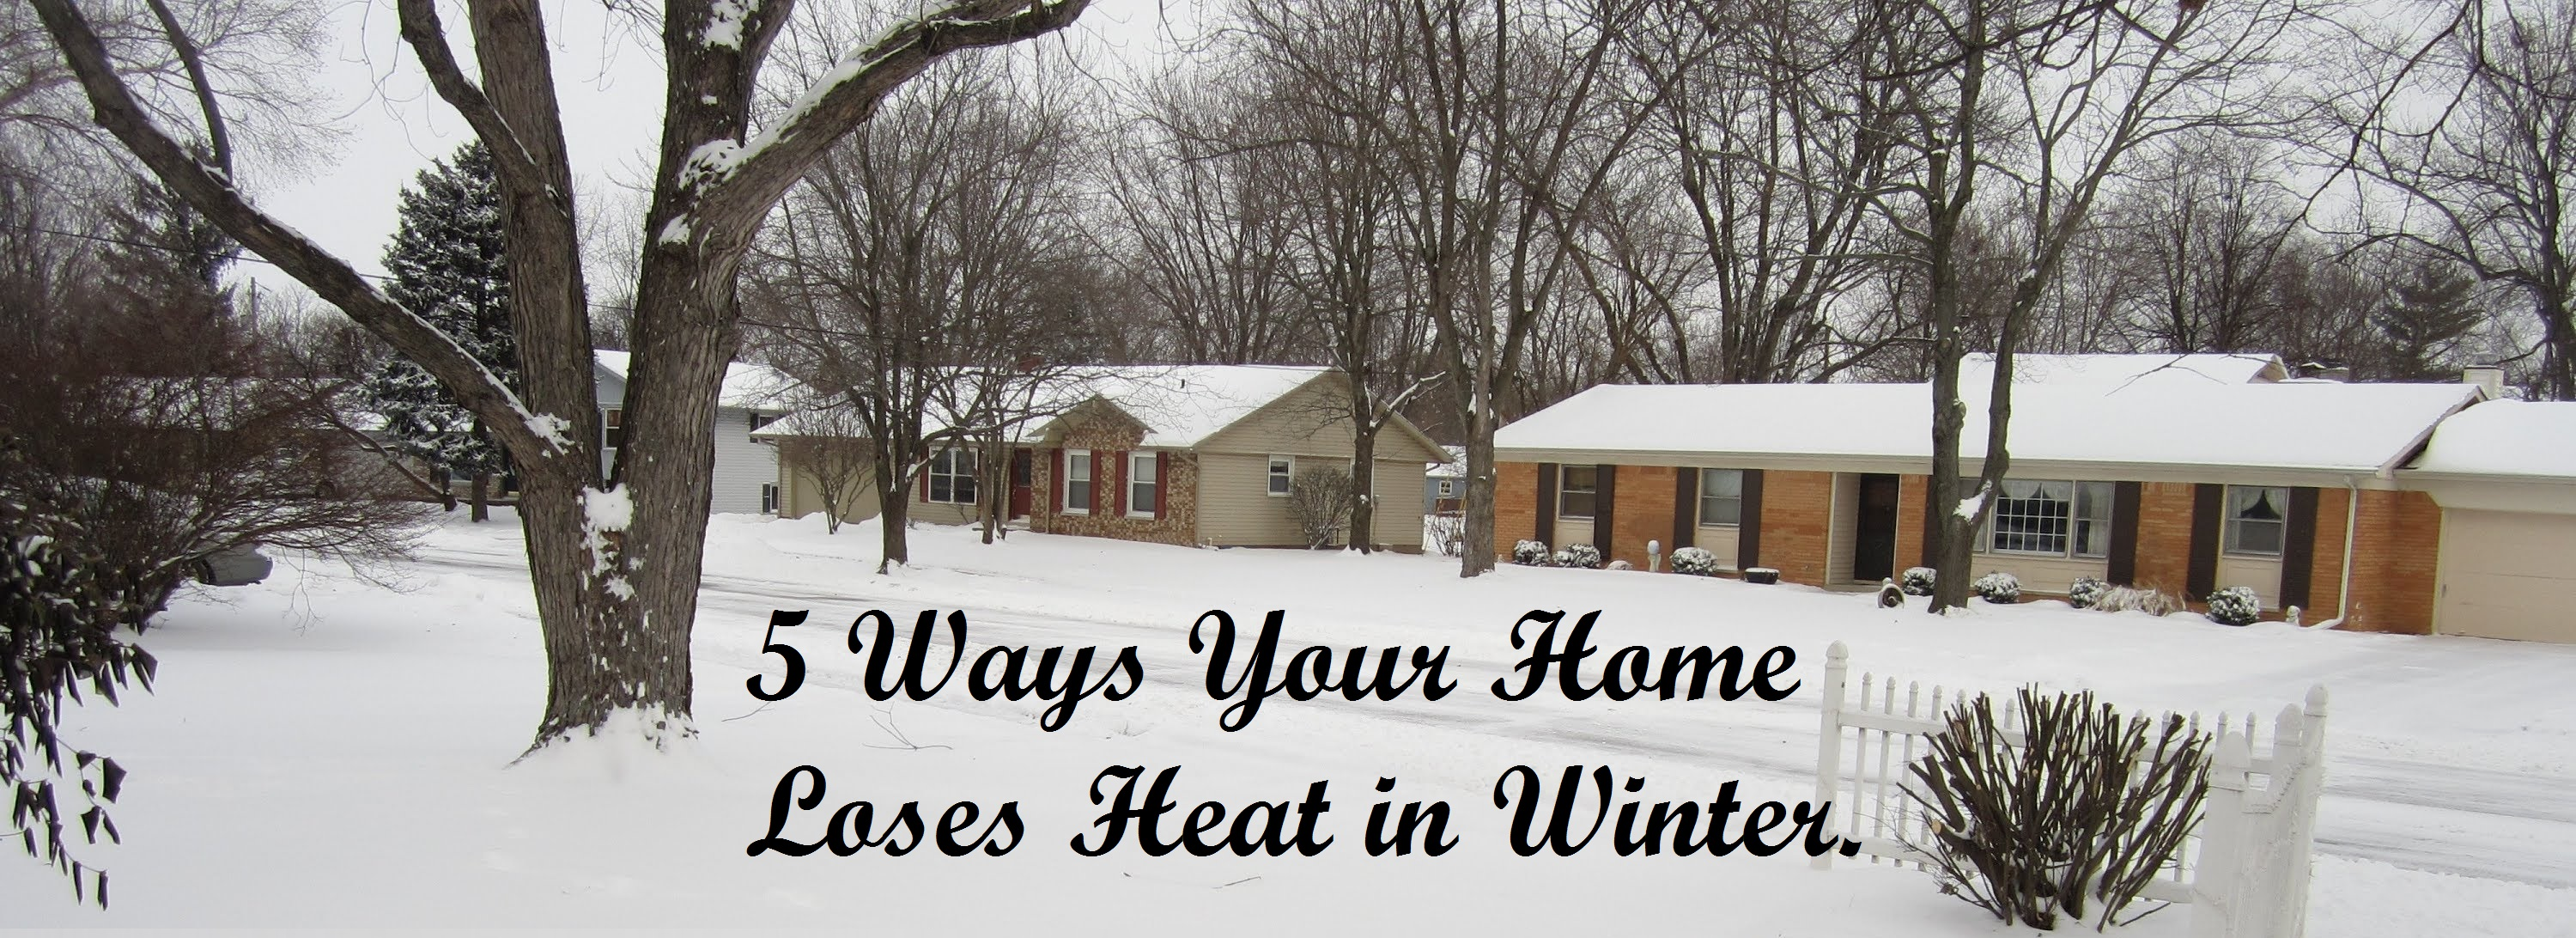 5 ways your home loses heat in winter.